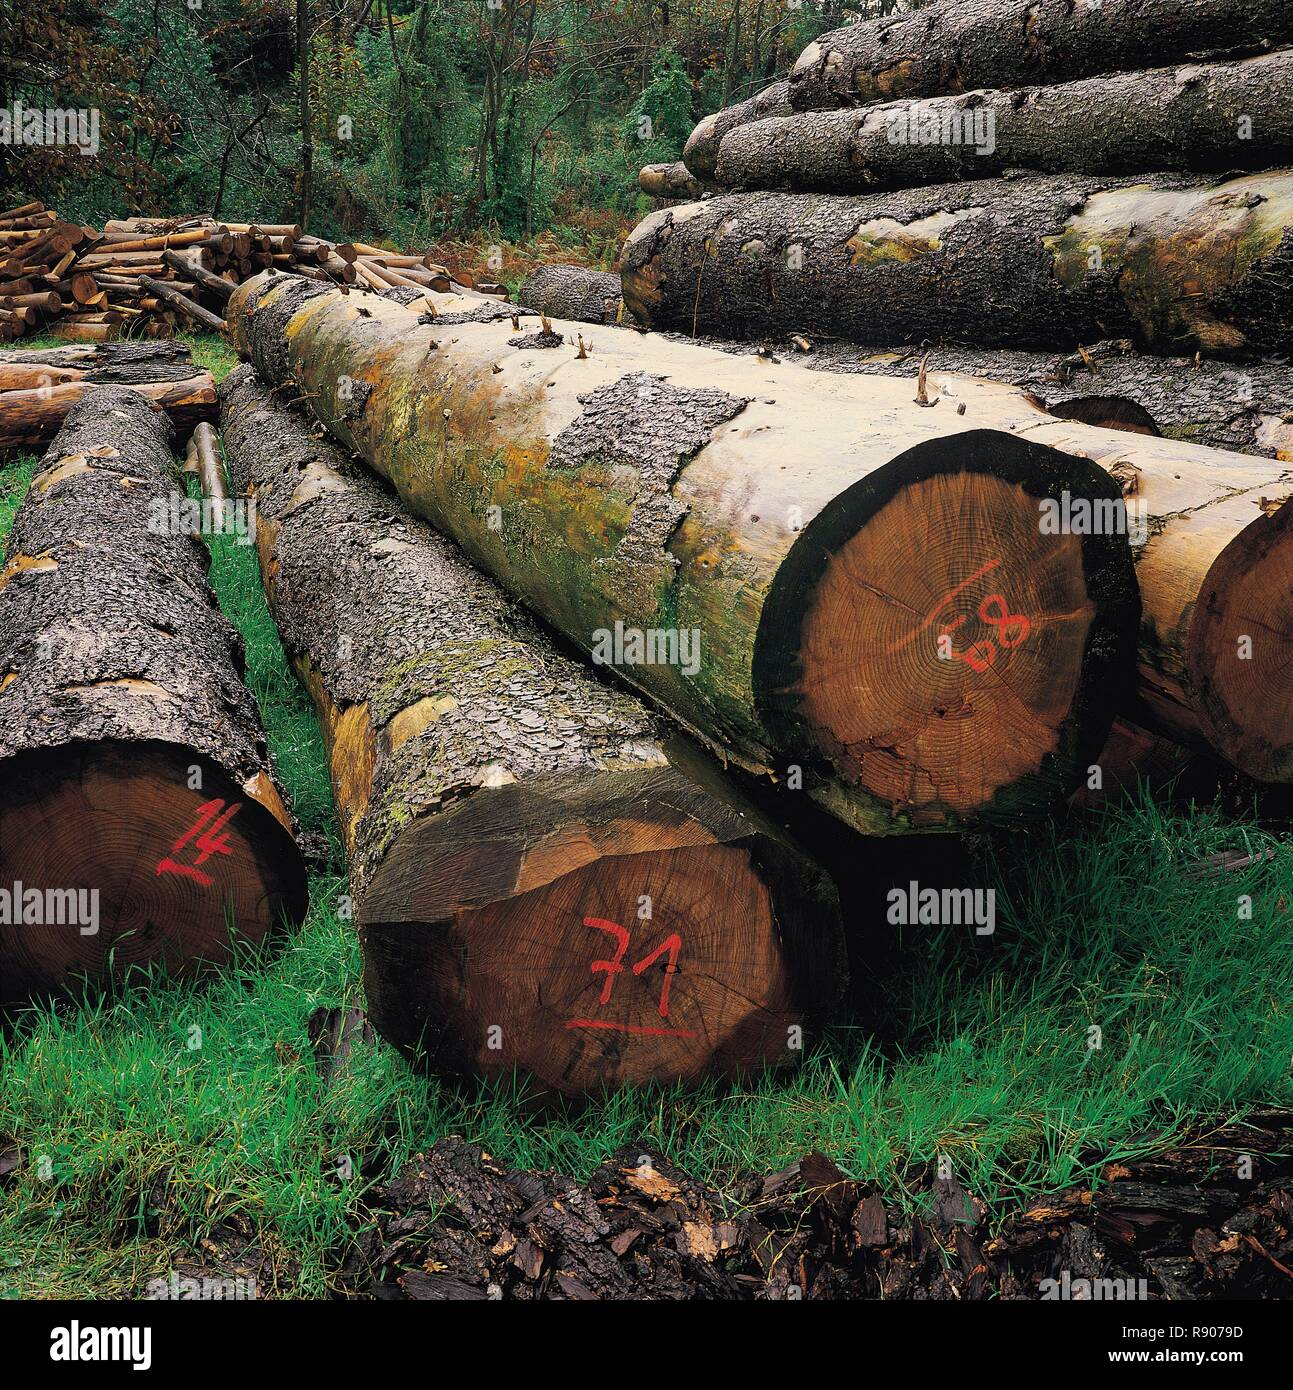 Spain, Asturias, Llanes, trunks of eucalyptus stored in a clearing Stock Photo